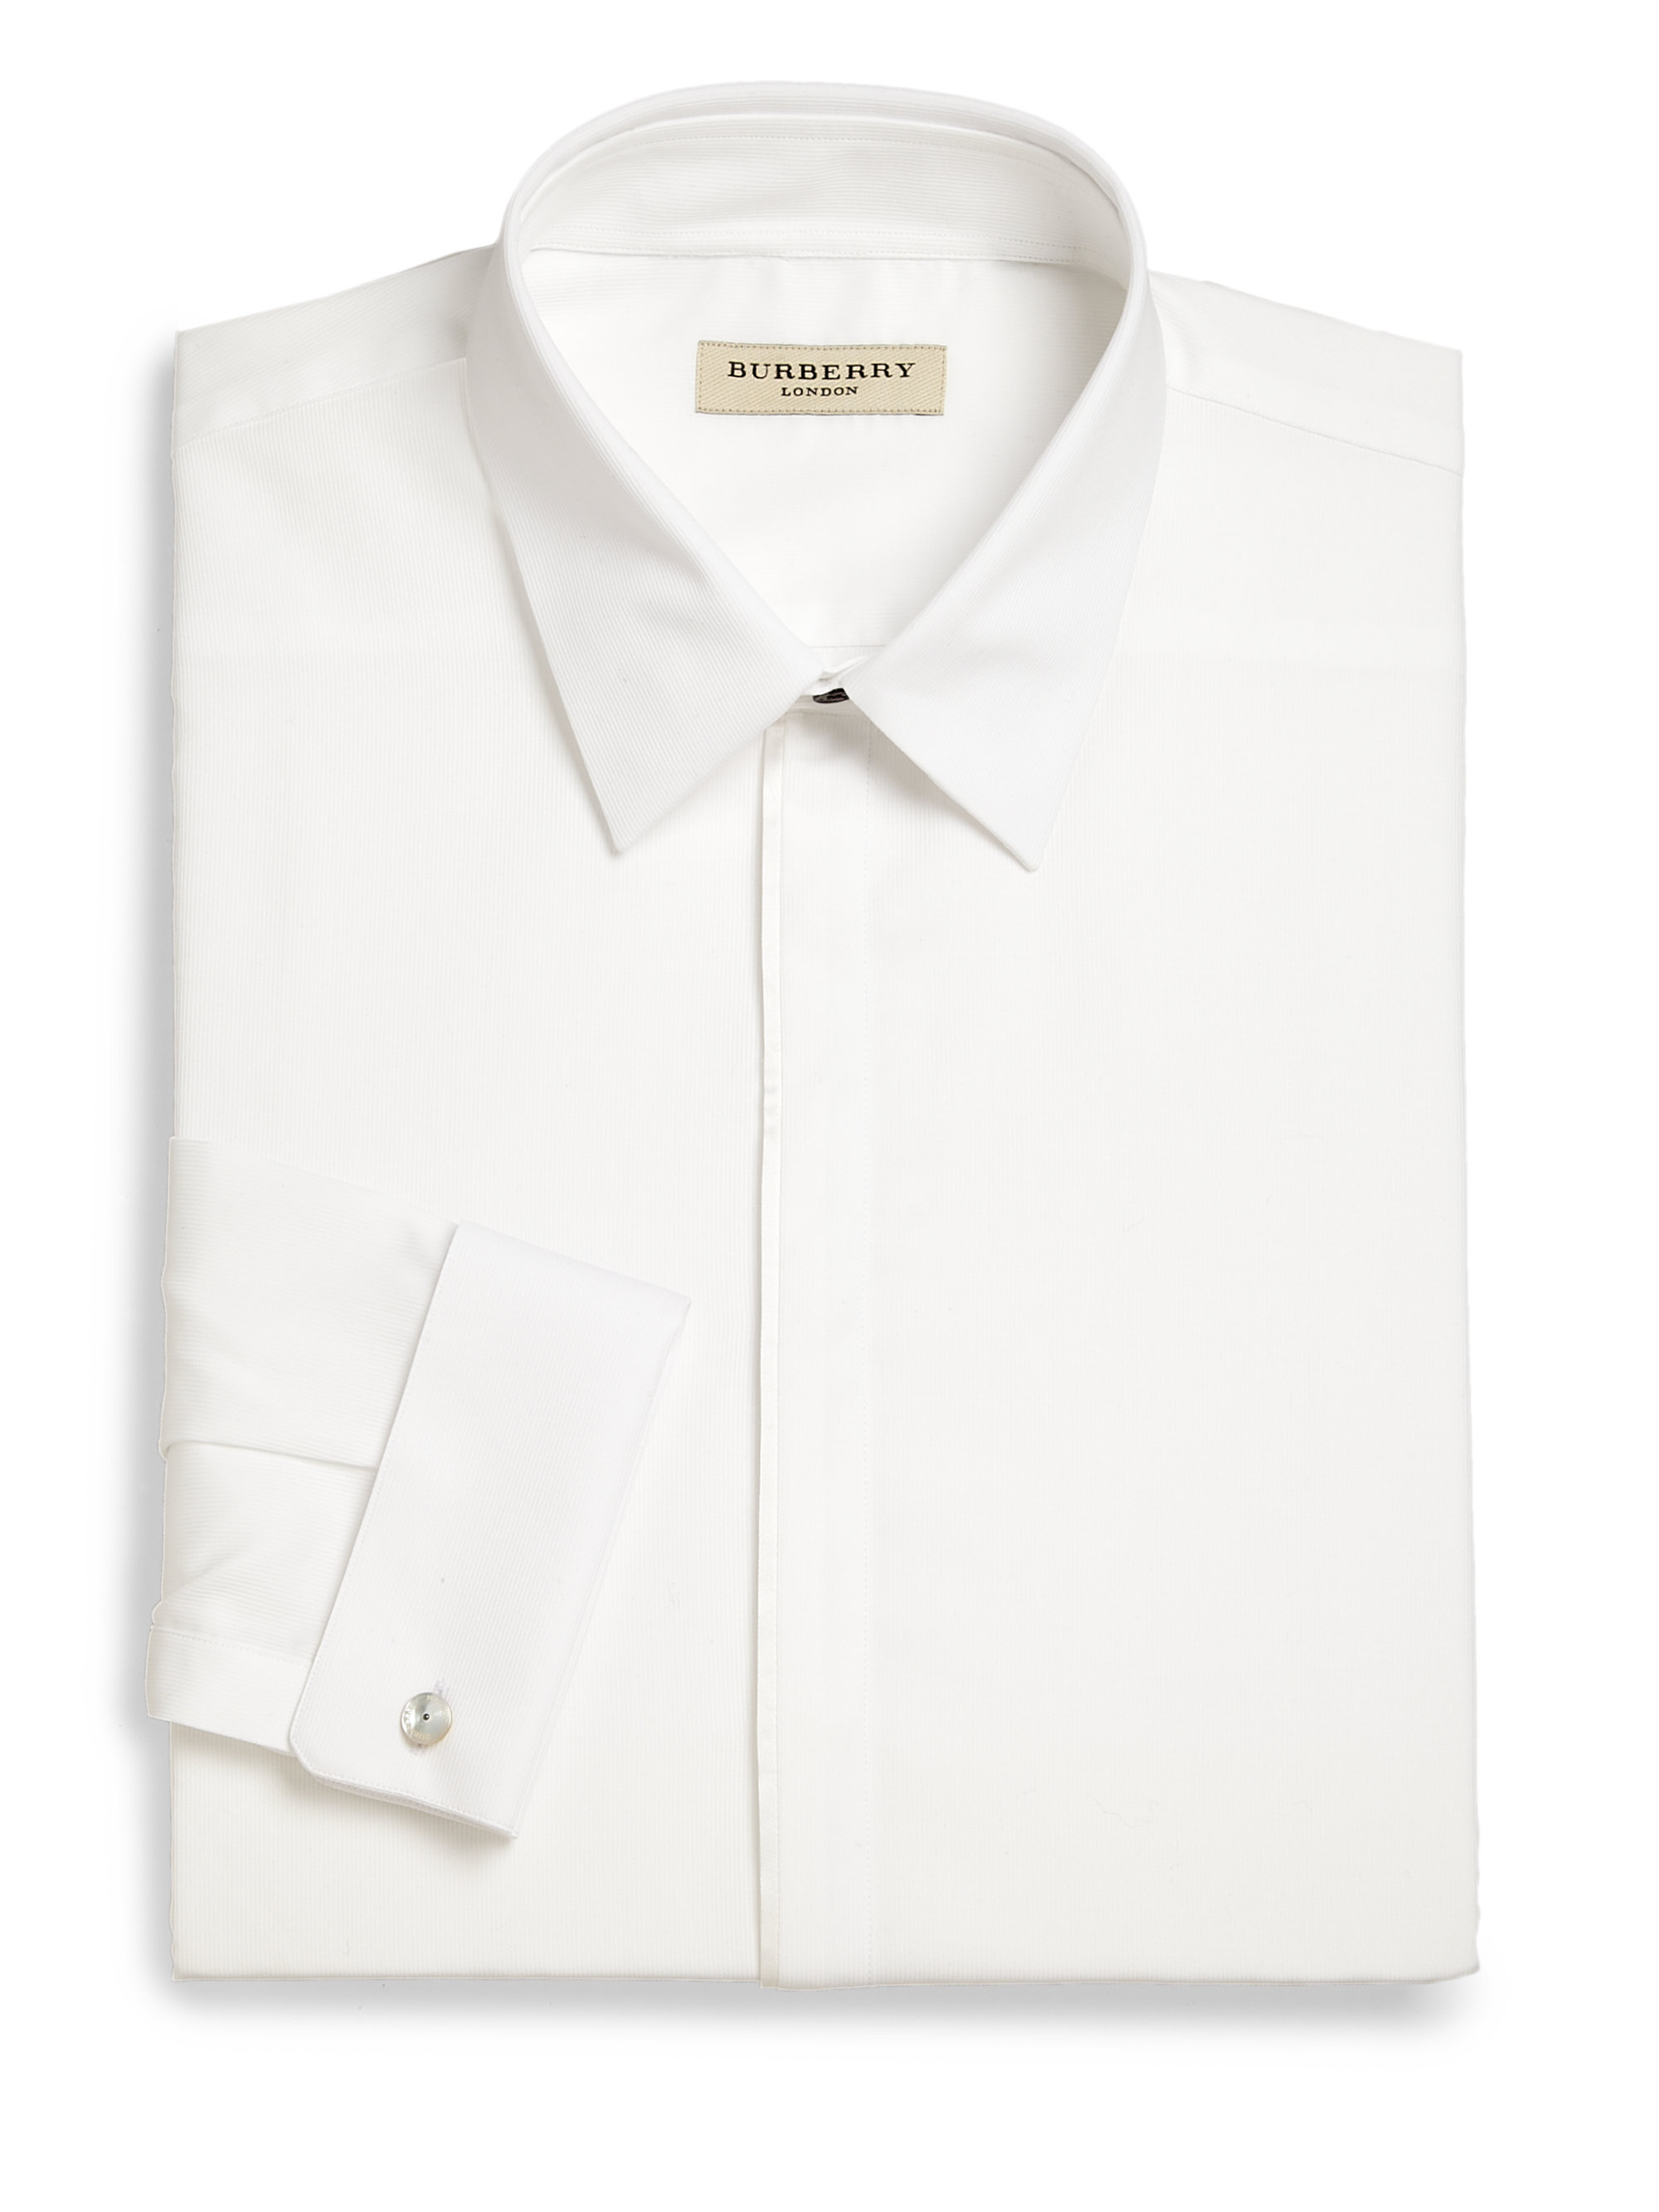 Burberry Slim Fit Tuxedo Shirt In White For Men Lyst